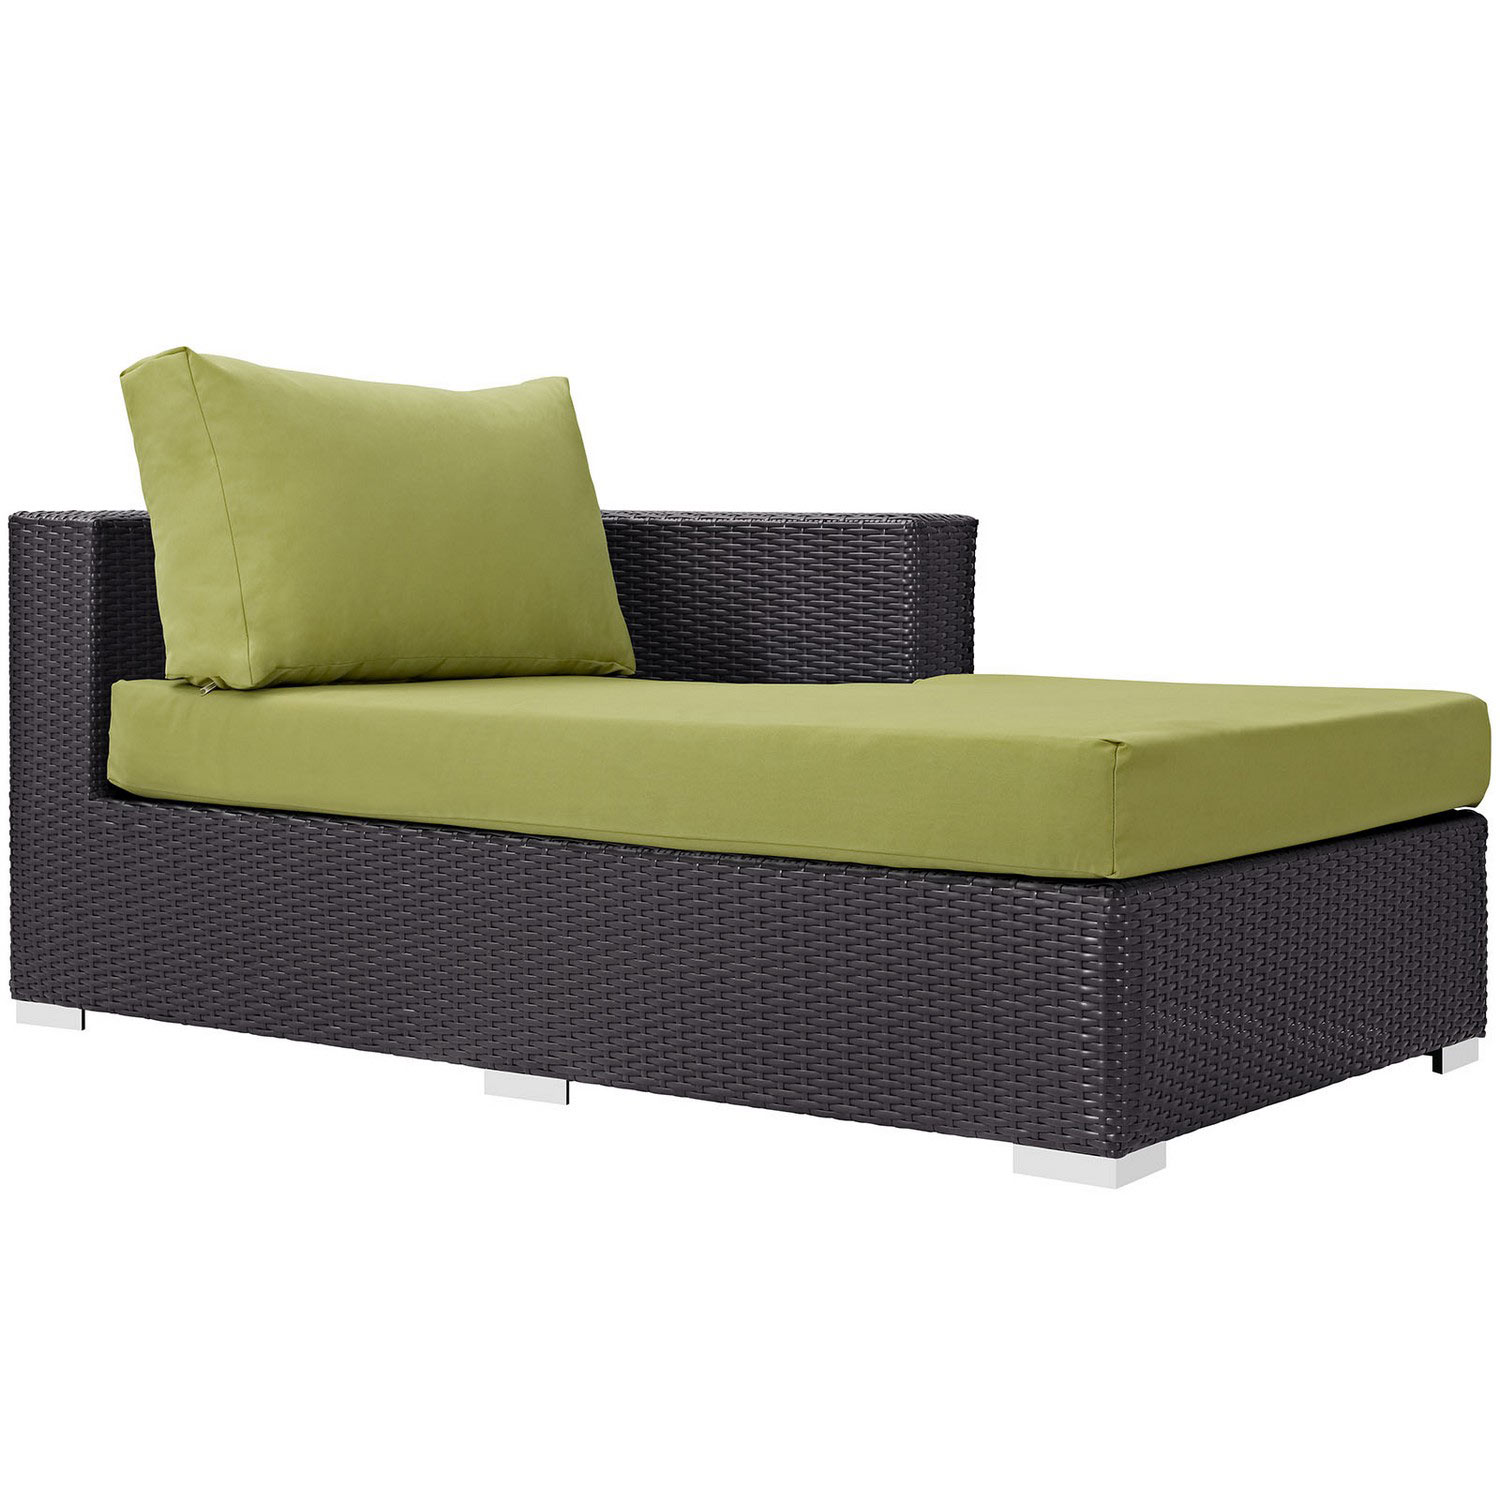 Modway Convene Outdoor Patio Fabric Right Arm Chaise - Espresso Peridot